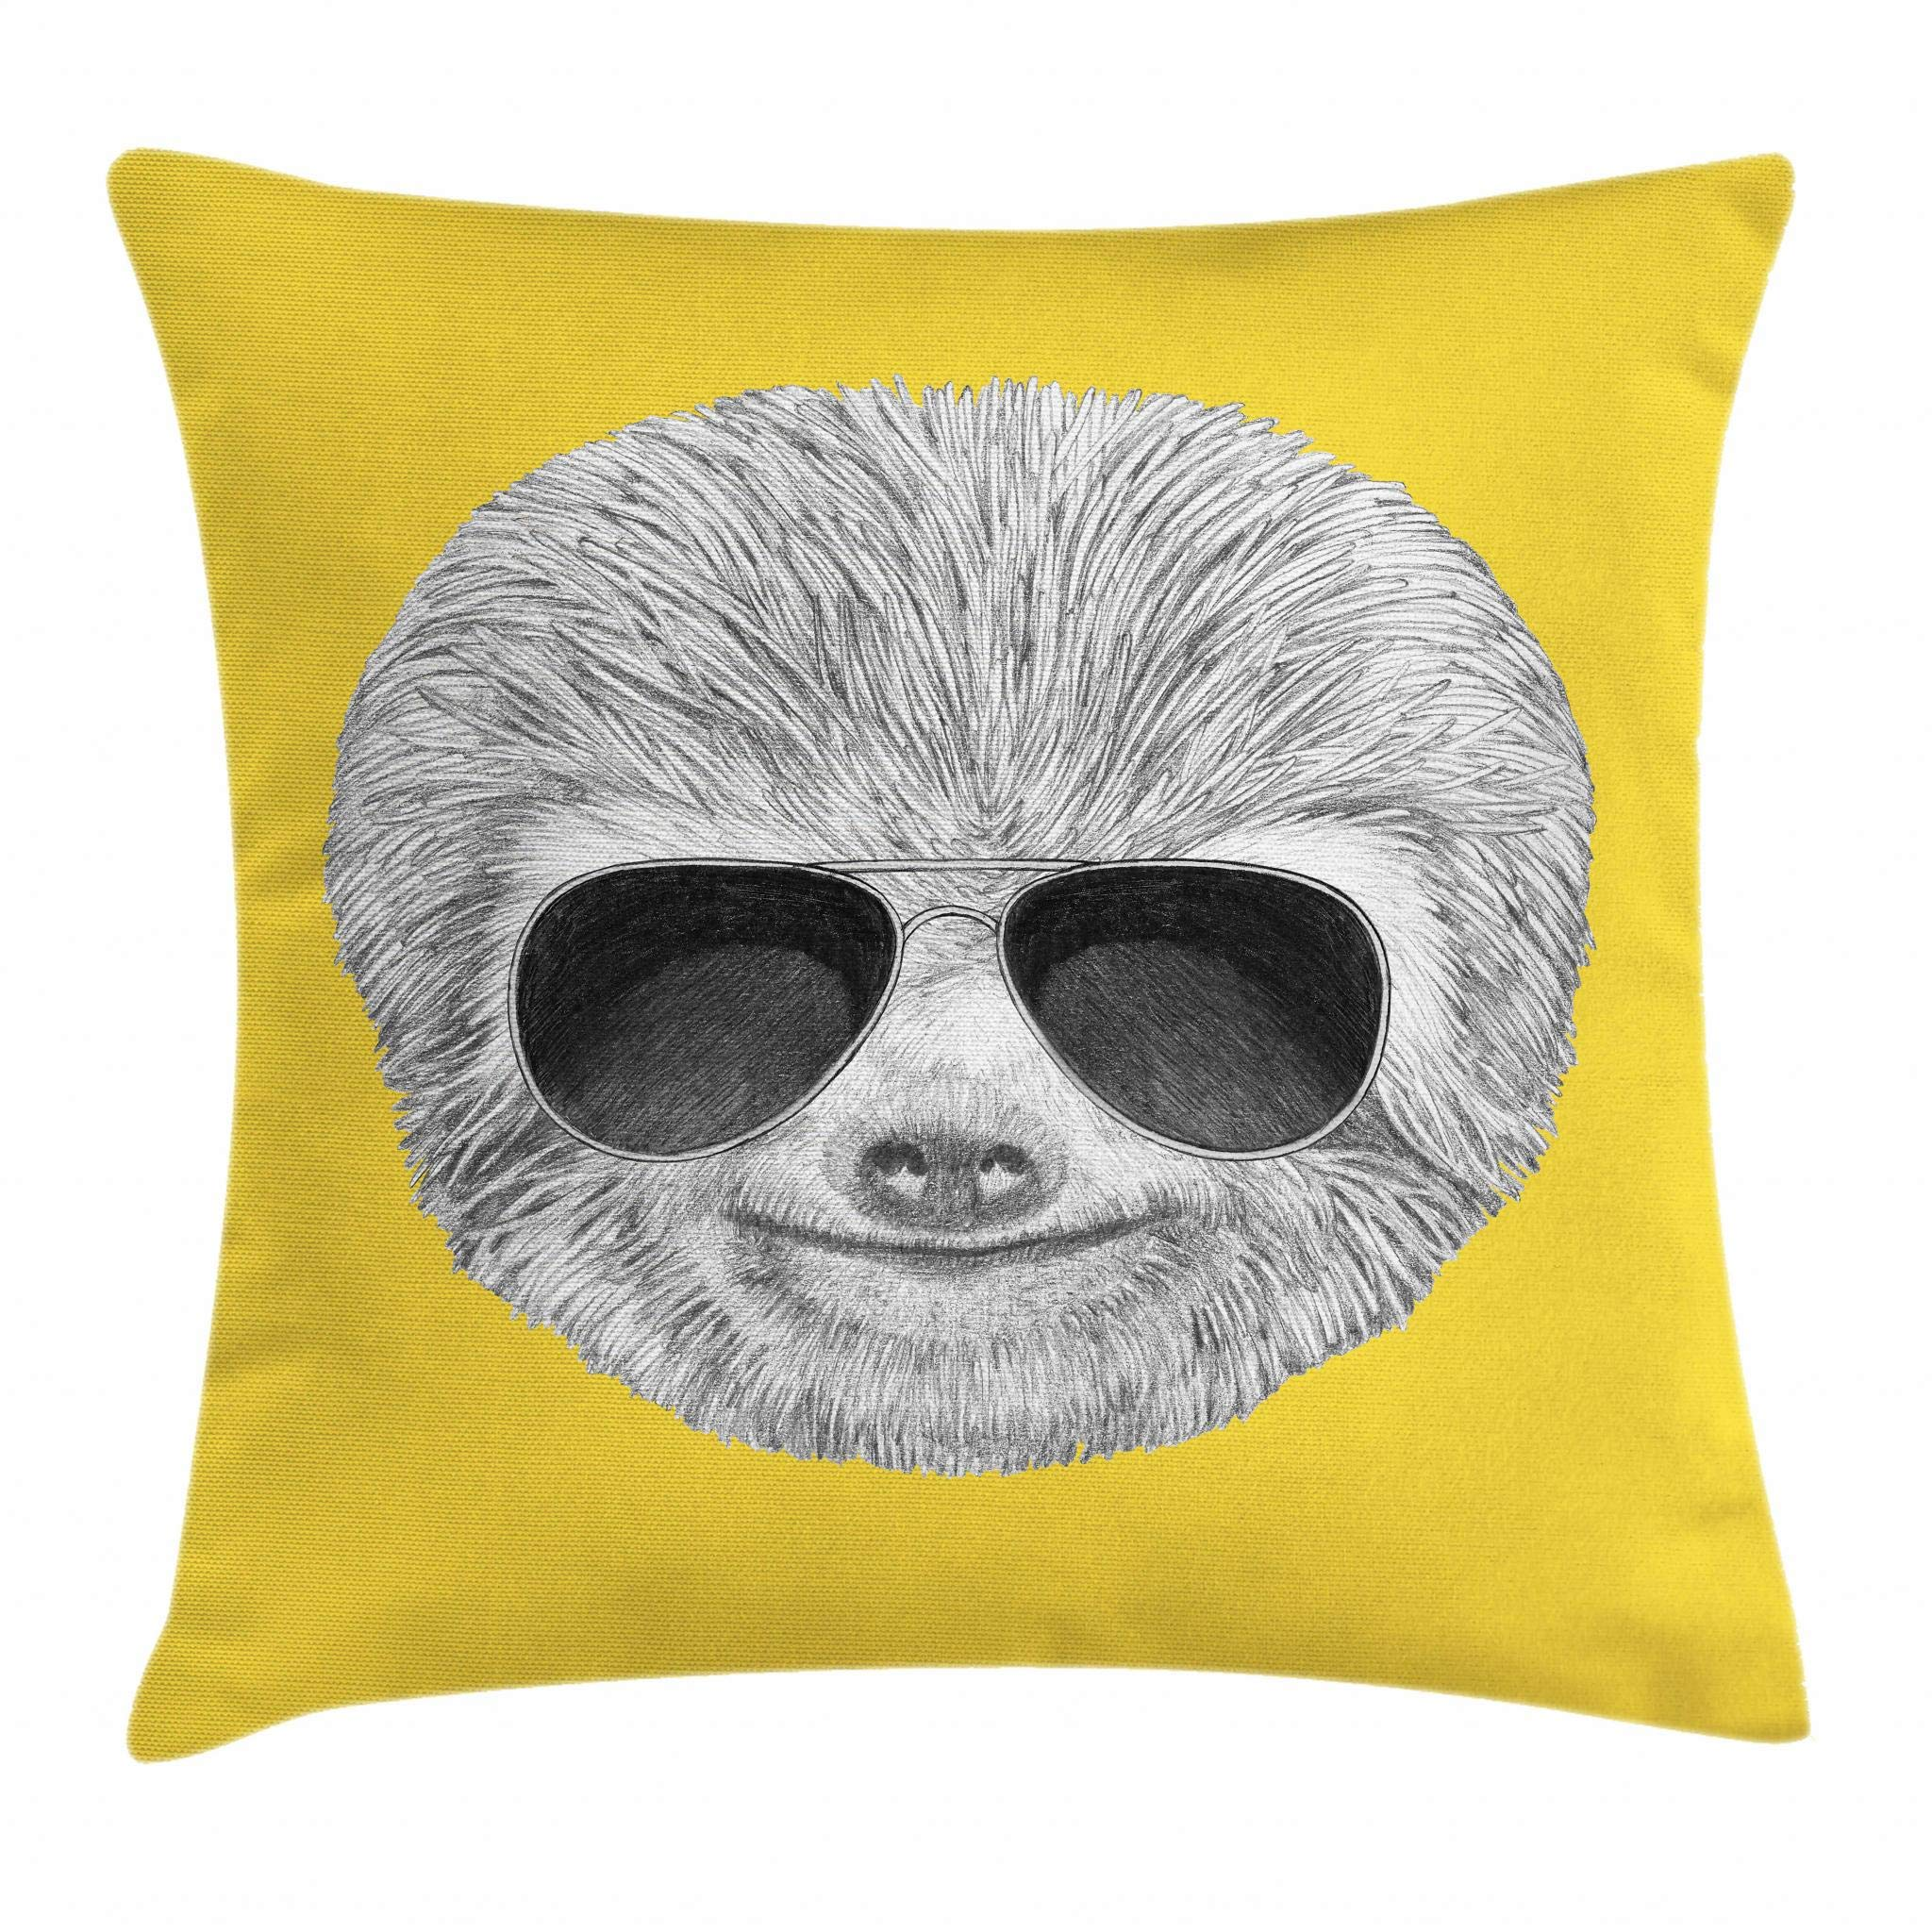 Ambesonne Sloth Throw Pillow Cushion Cover, Hipster Jungle Animal with Sunglasses Smiling Funny Expression Cool Character Print, Decorative Square Accent Pillow Case, 18 X 18 Inches, Yelow Grey